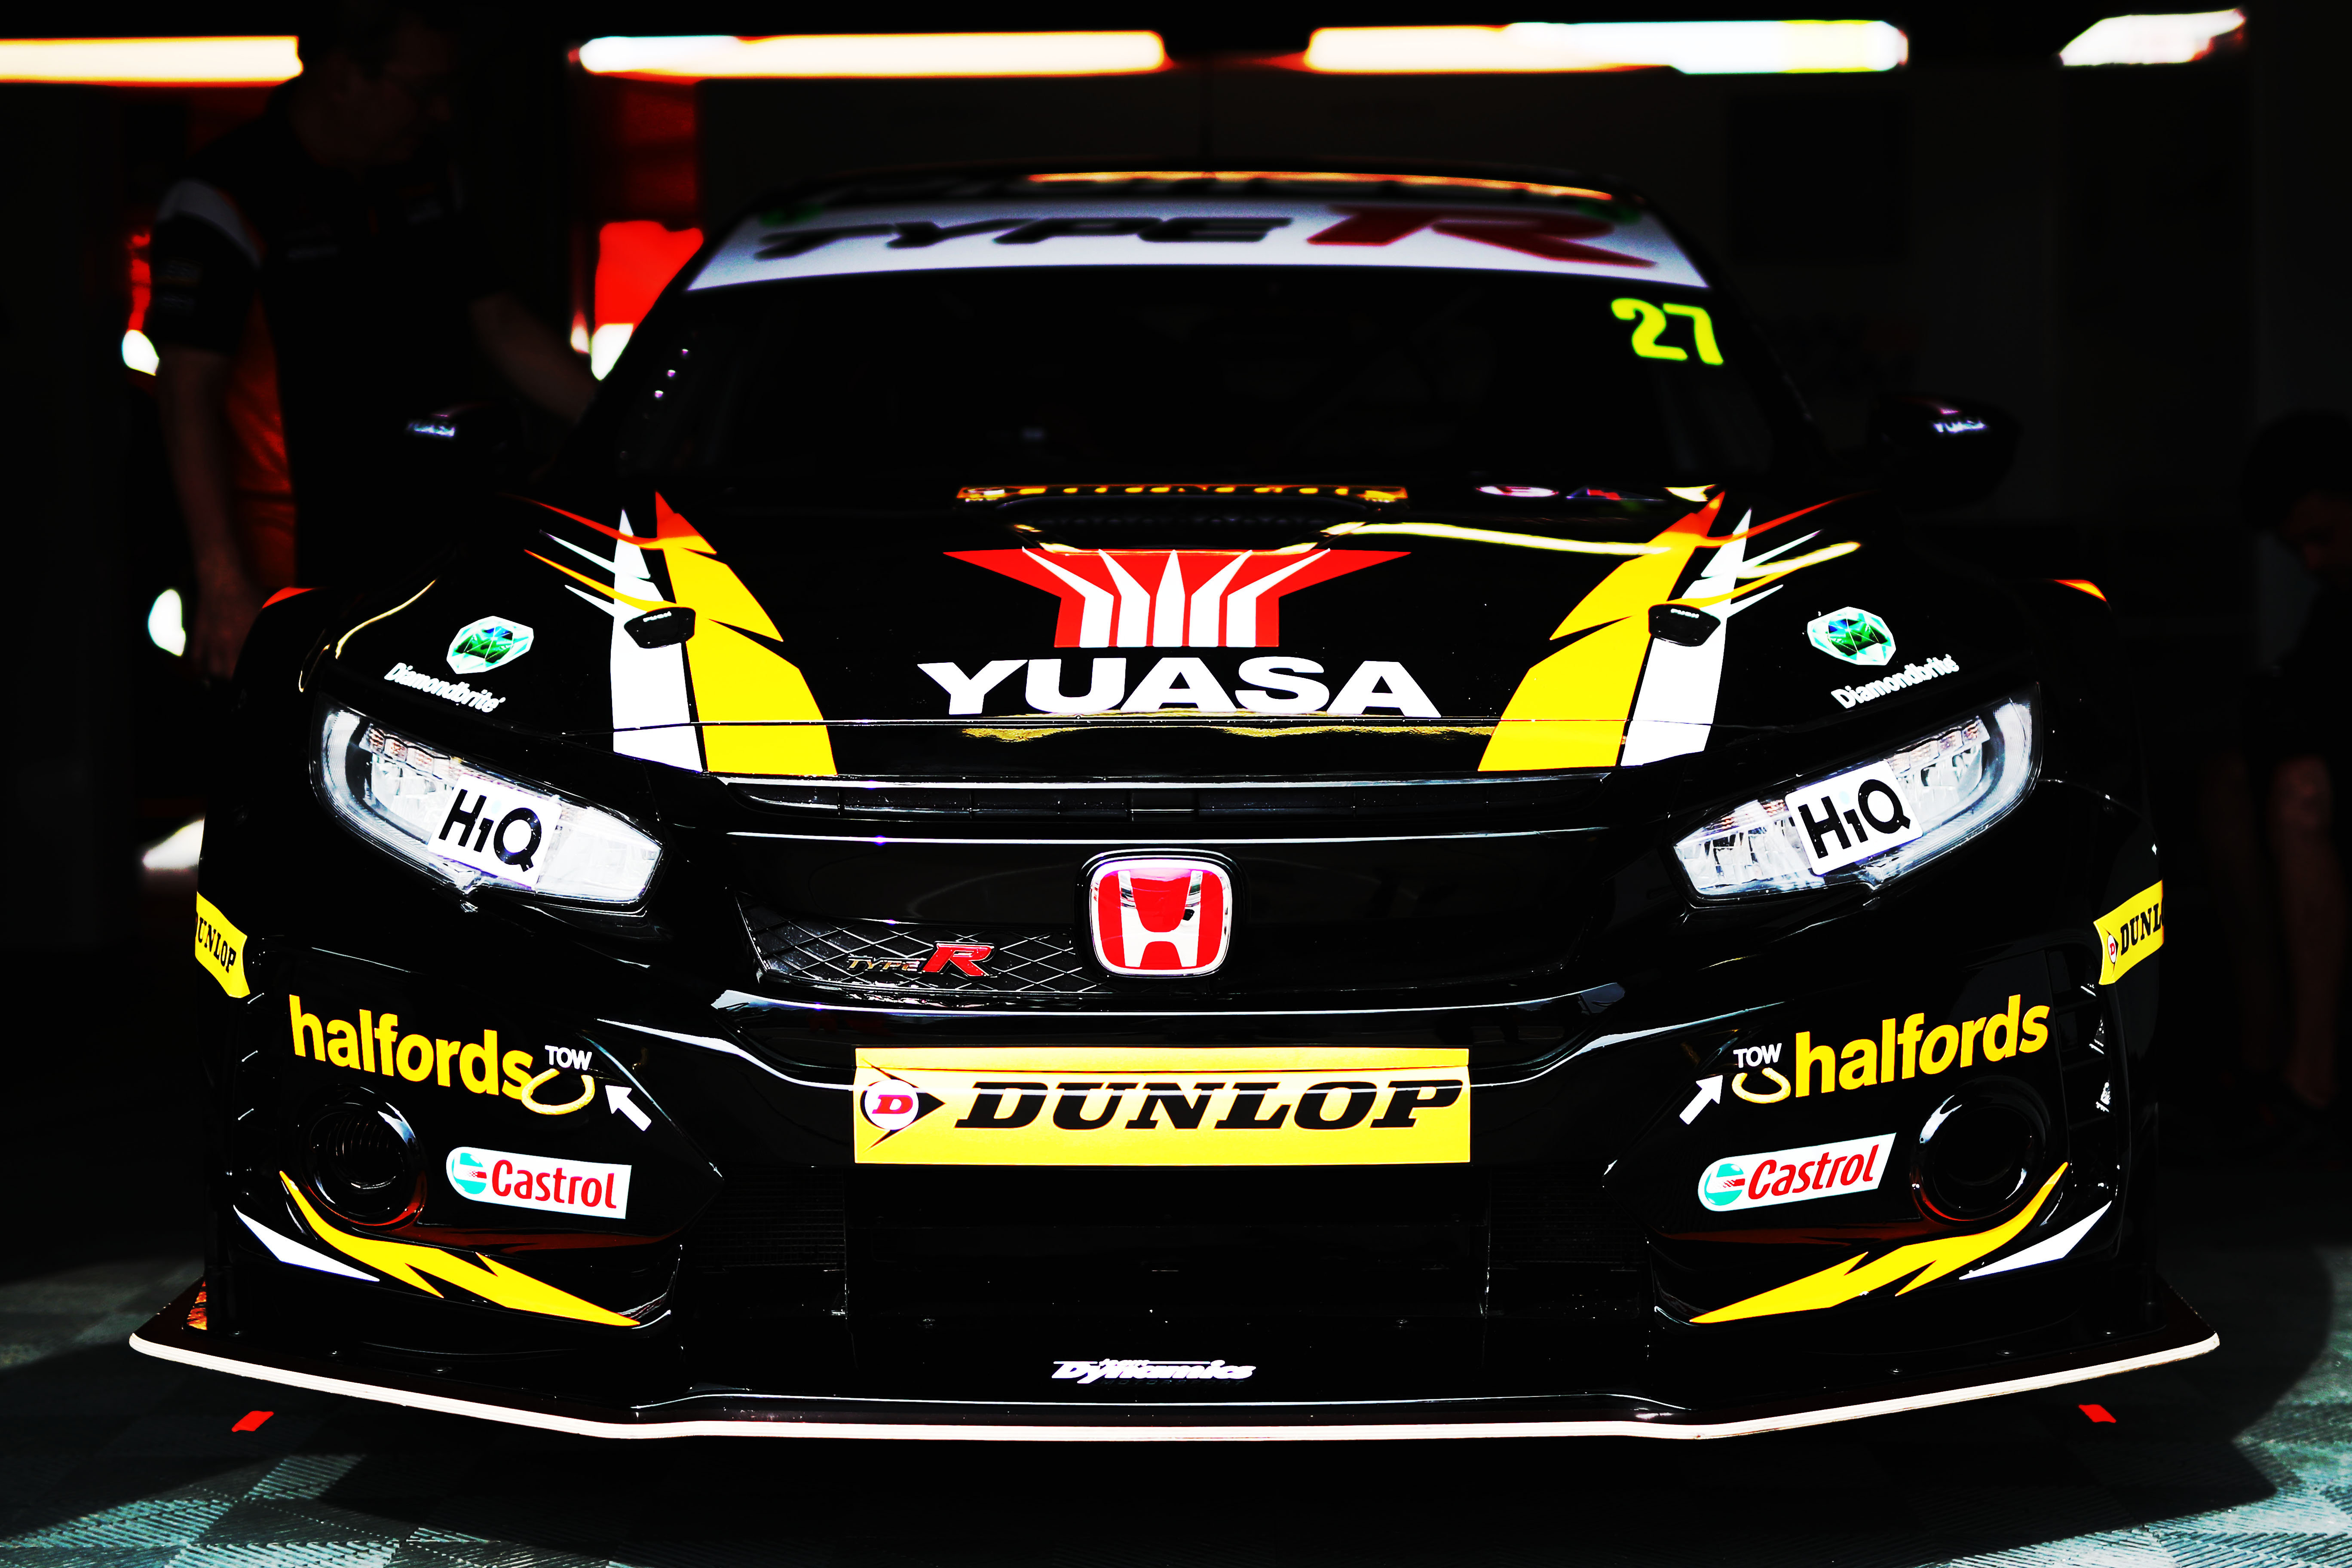 Podium for Neal as Honda strengthens title challenge